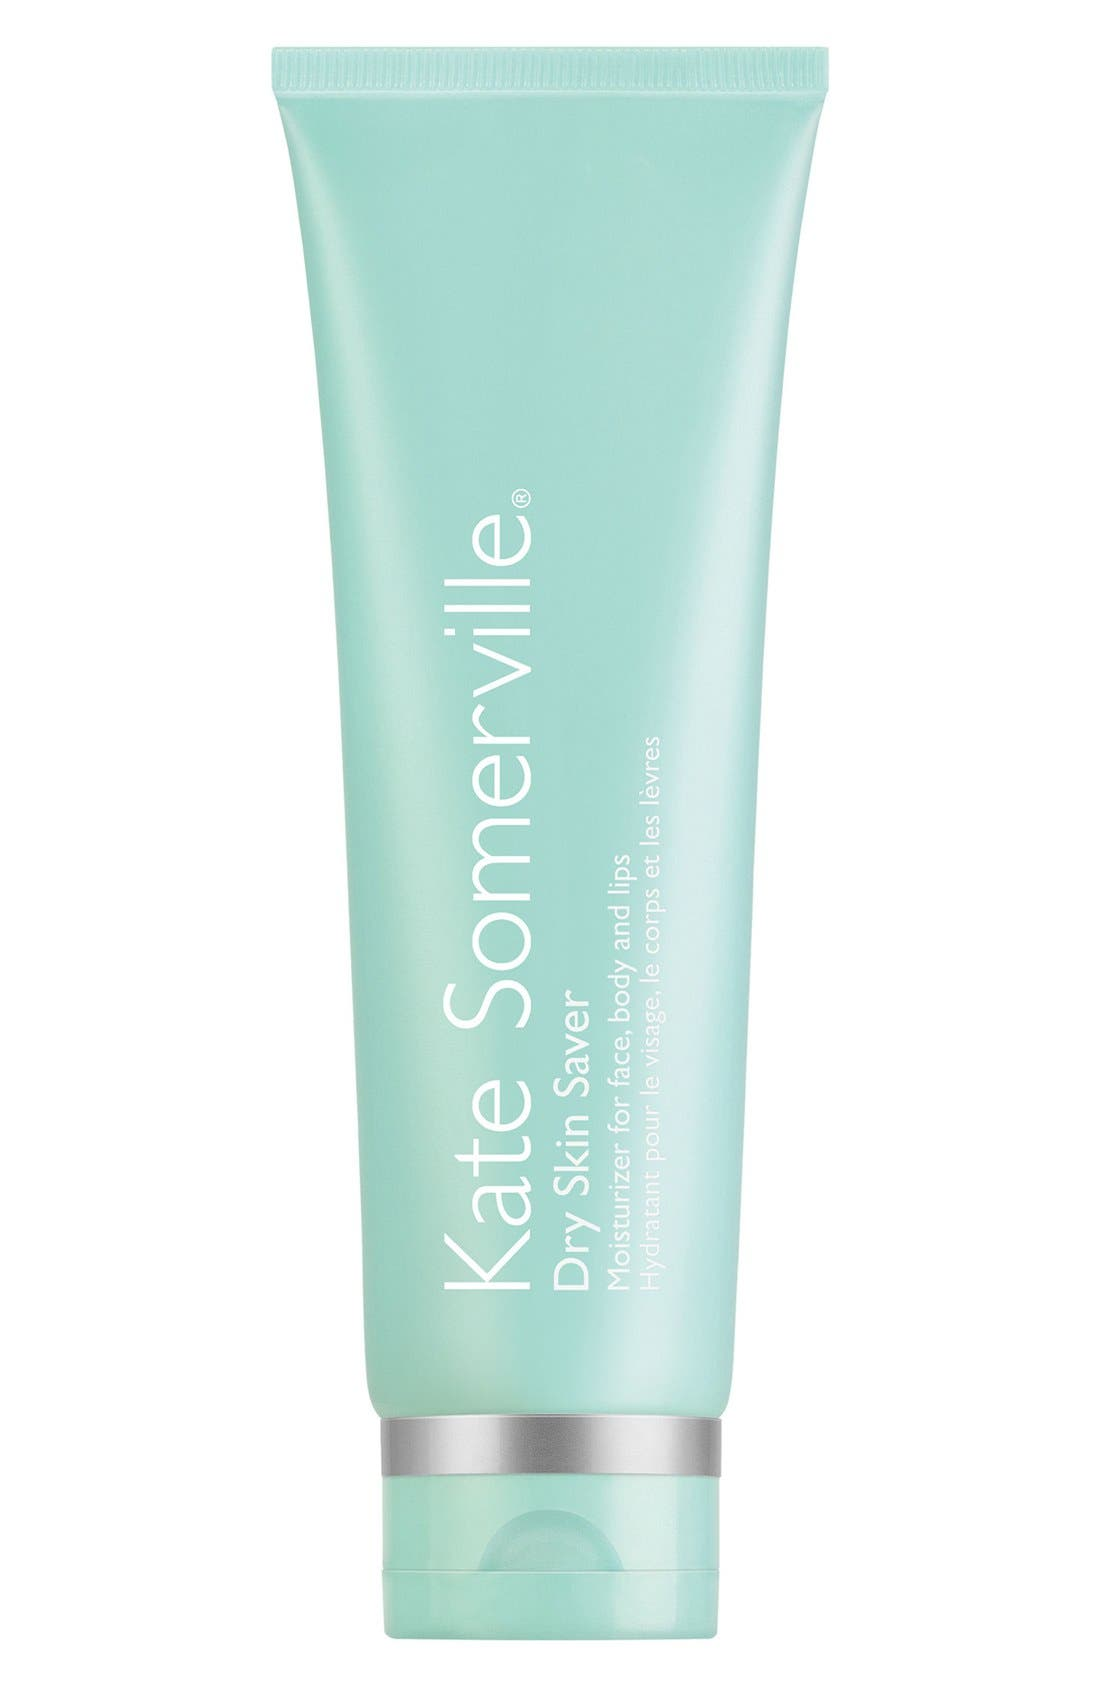 'Dry Skin Saver' Moisturizer for Face, Lips & Body,                             Main thumbnail 1, color,                             NO COLOR